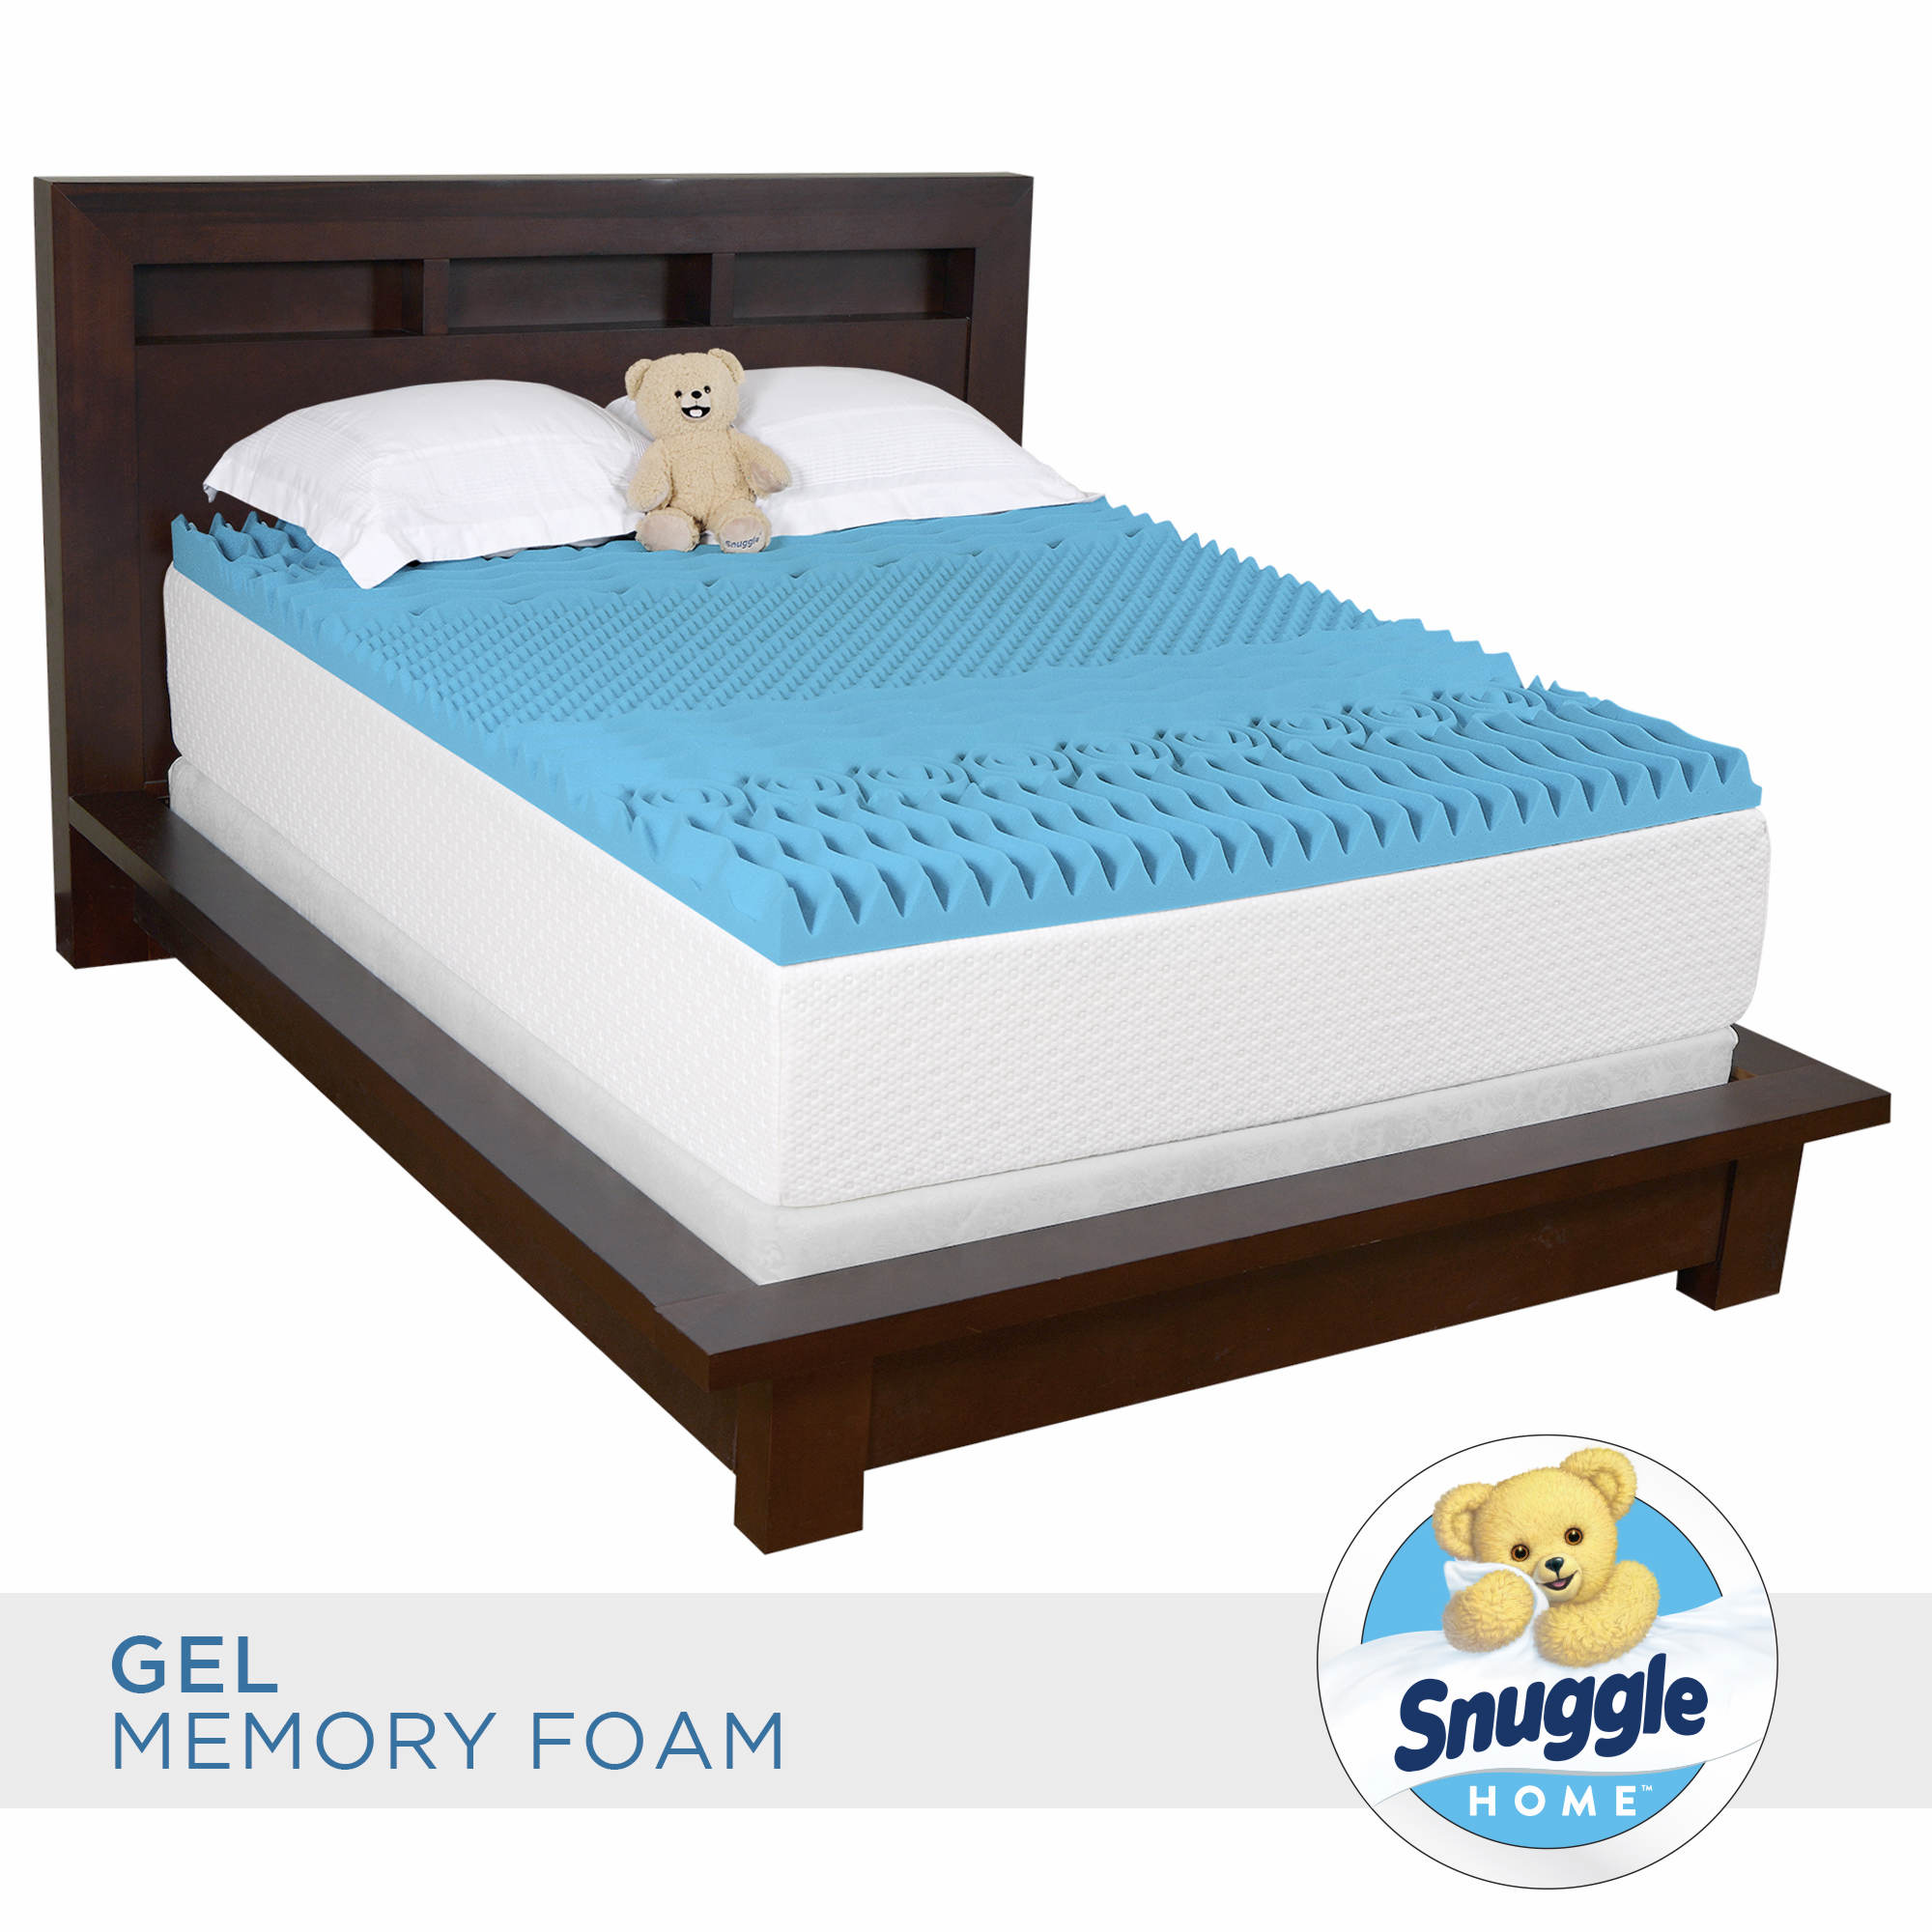 "Snuggle Home Full-Size 3"" Gel Memory Foam 7-Zone Mattress Topper with Skirted Cover"